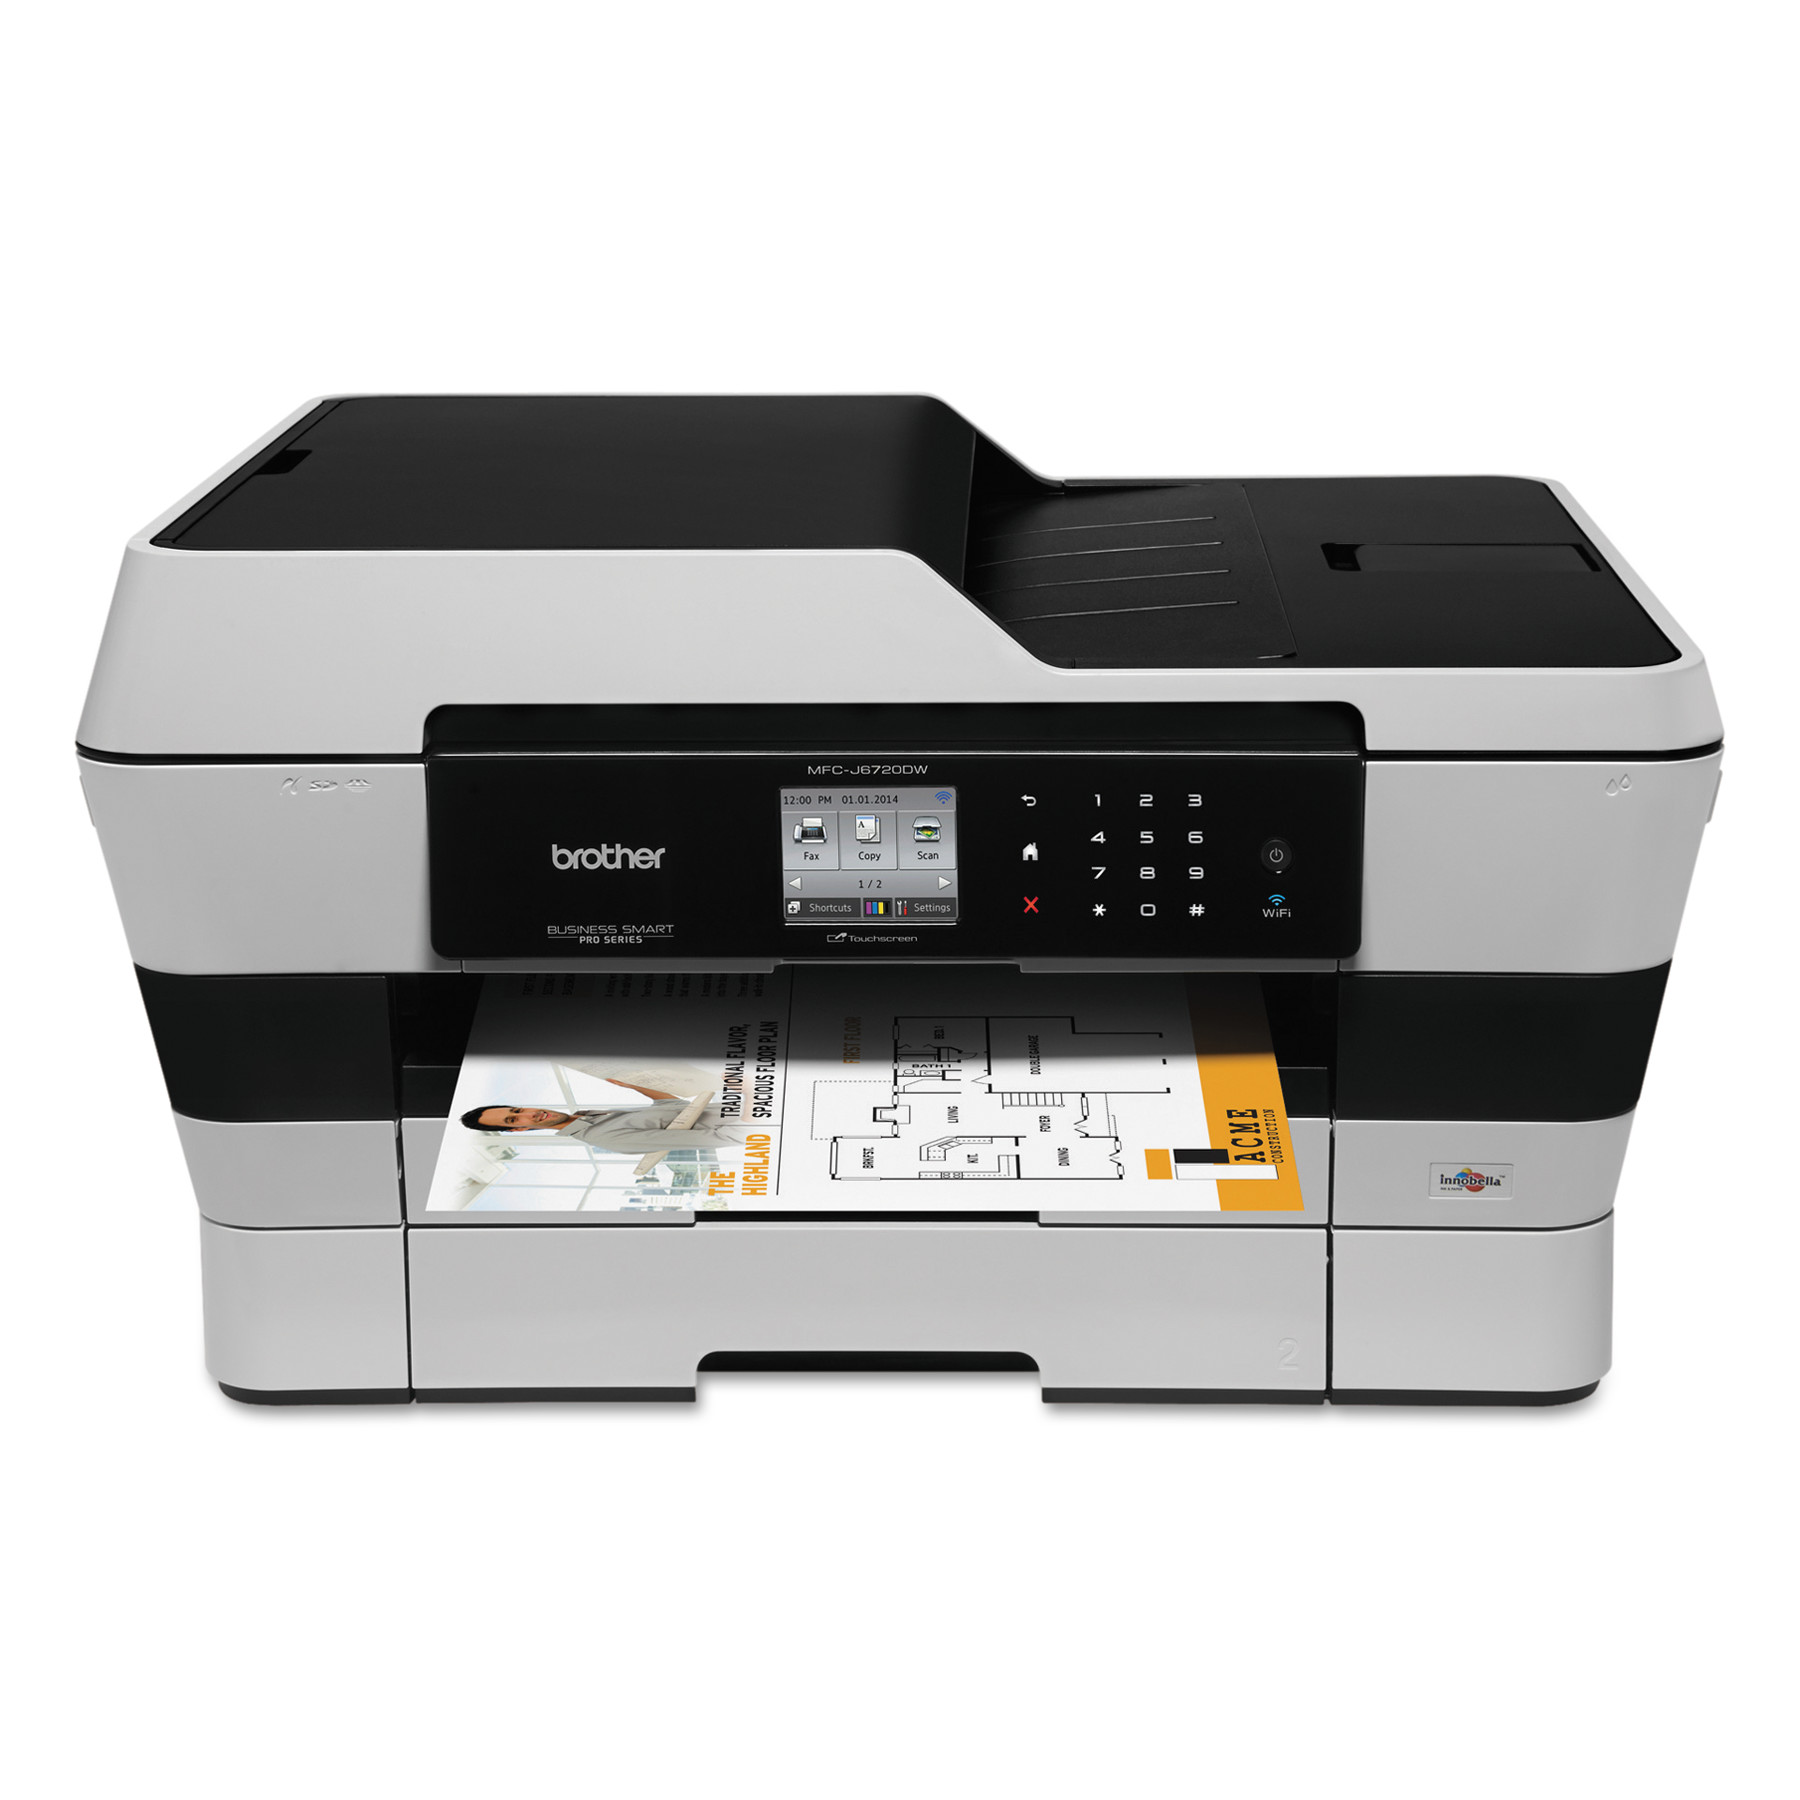 Brother Business Smart Pro MFC-J6720DW Wireless All-in-One Inkjet, Copy Fax Print Scan by Brother